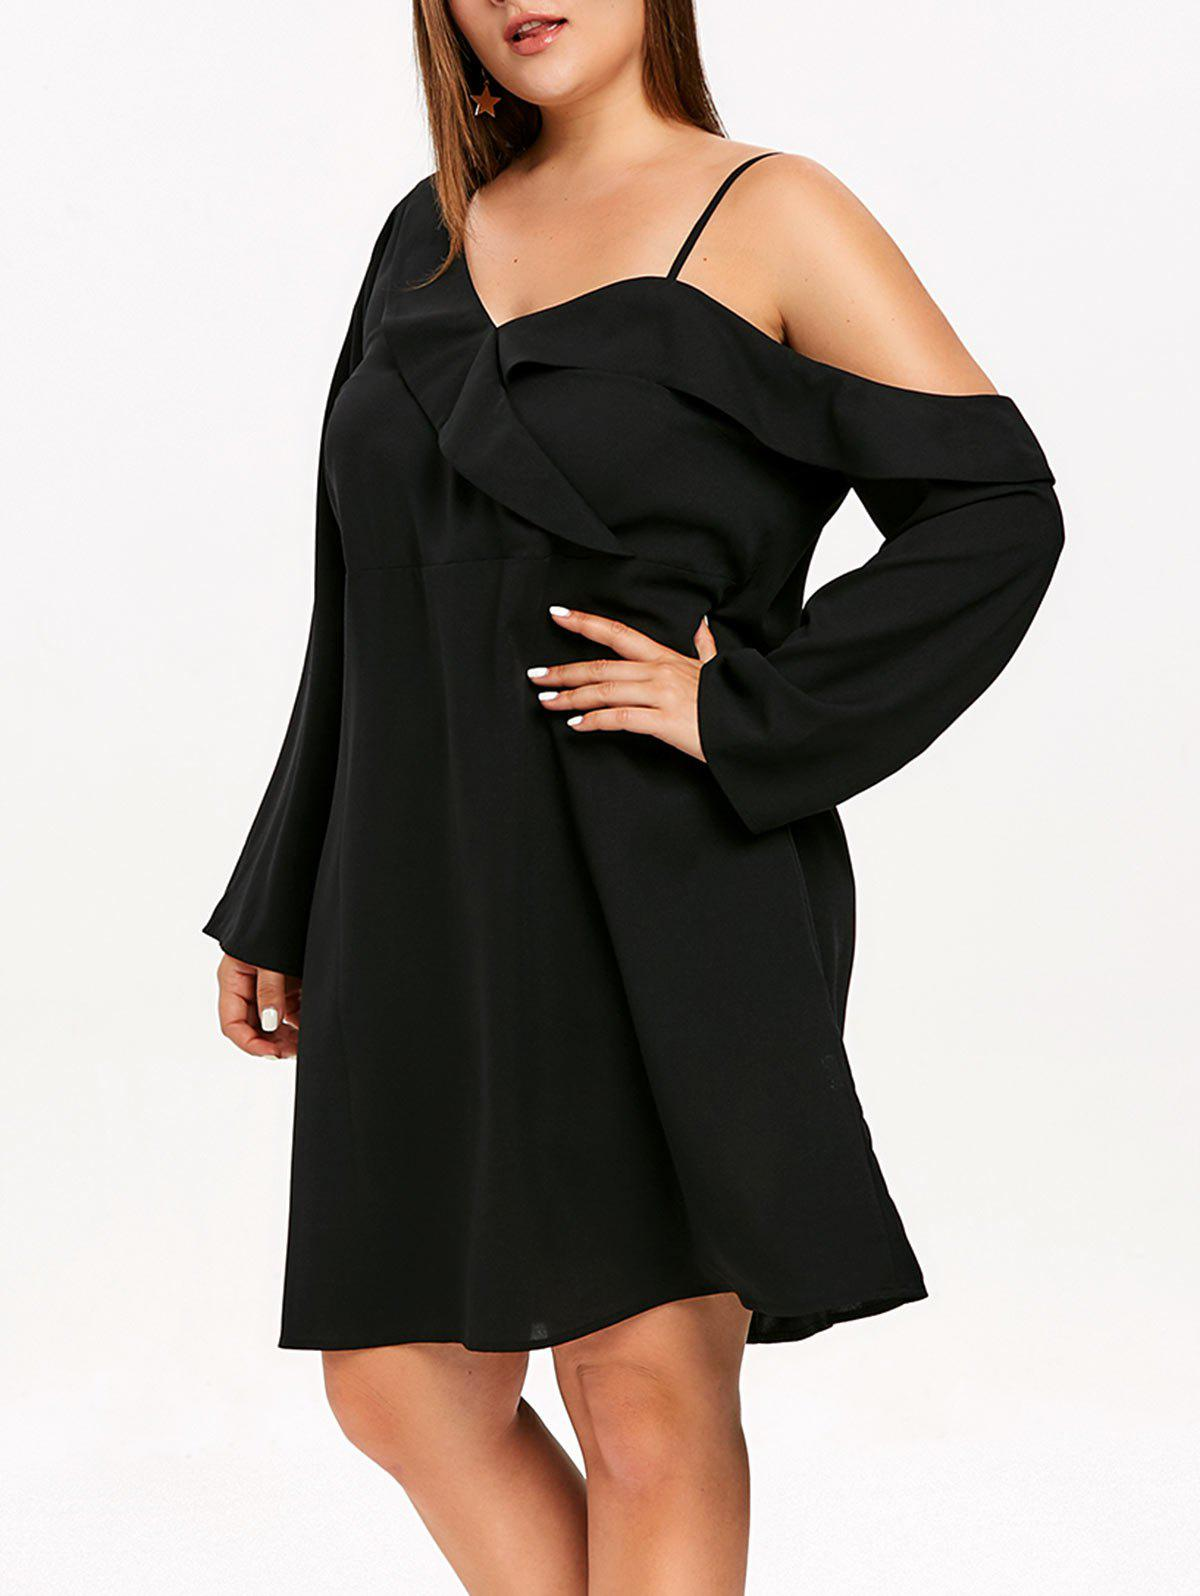 Discount Plunging Neck Ruffle Trim Plus Size Mini Dress